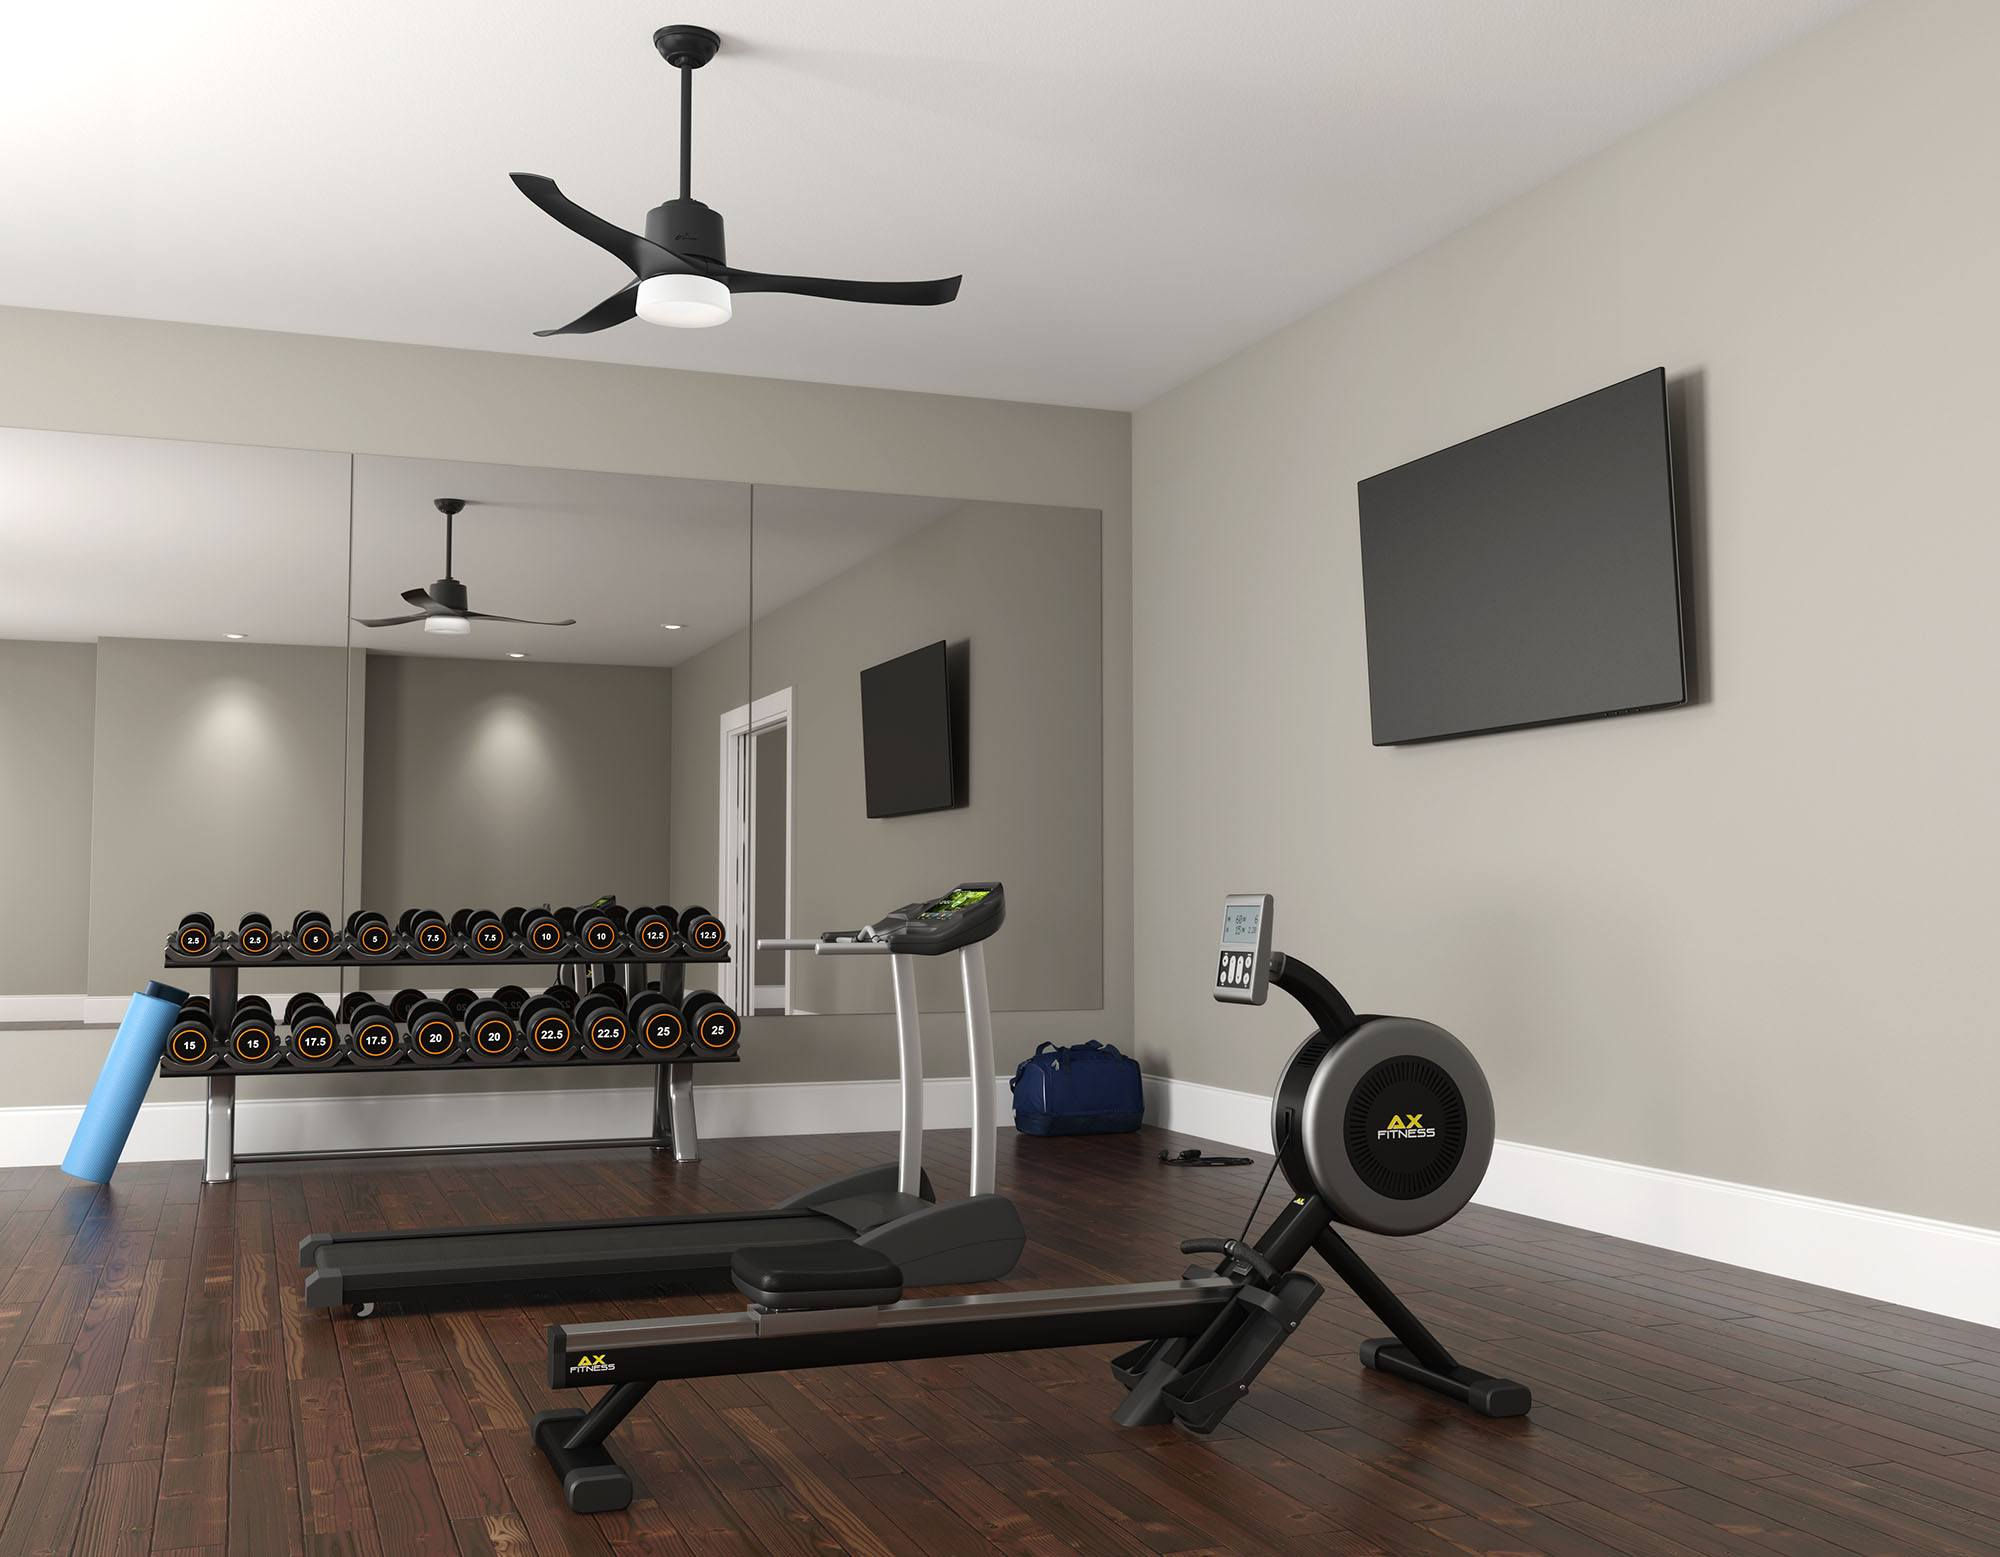 Symphony smart home ceiling fan in a home gym